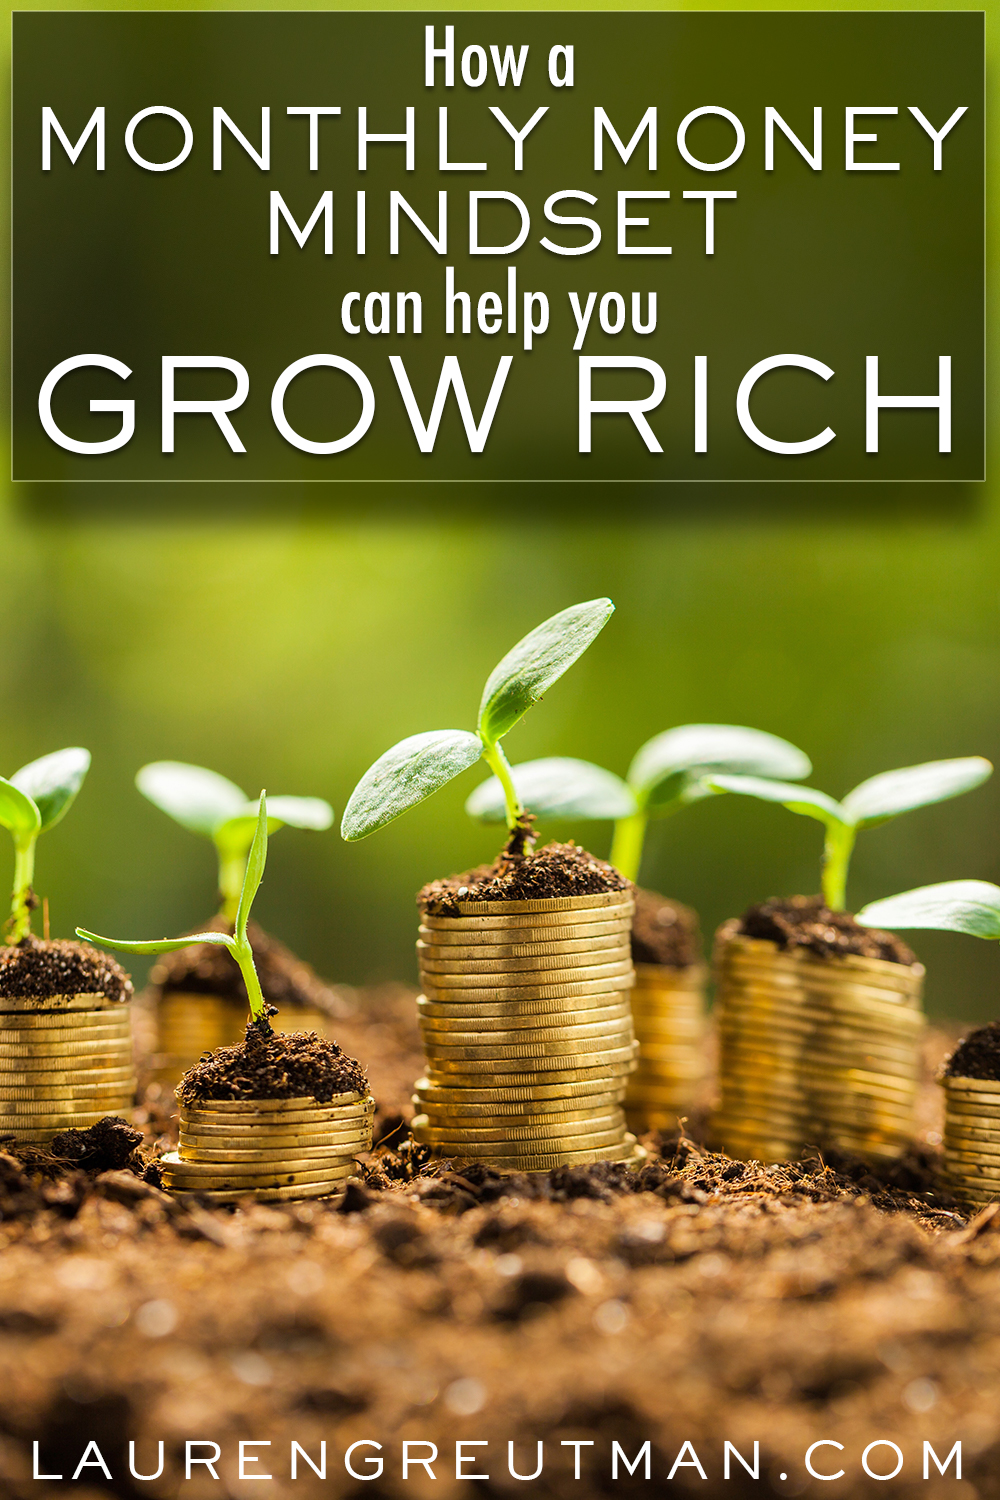 How a Monthly Money Mindset can help you grow rich!